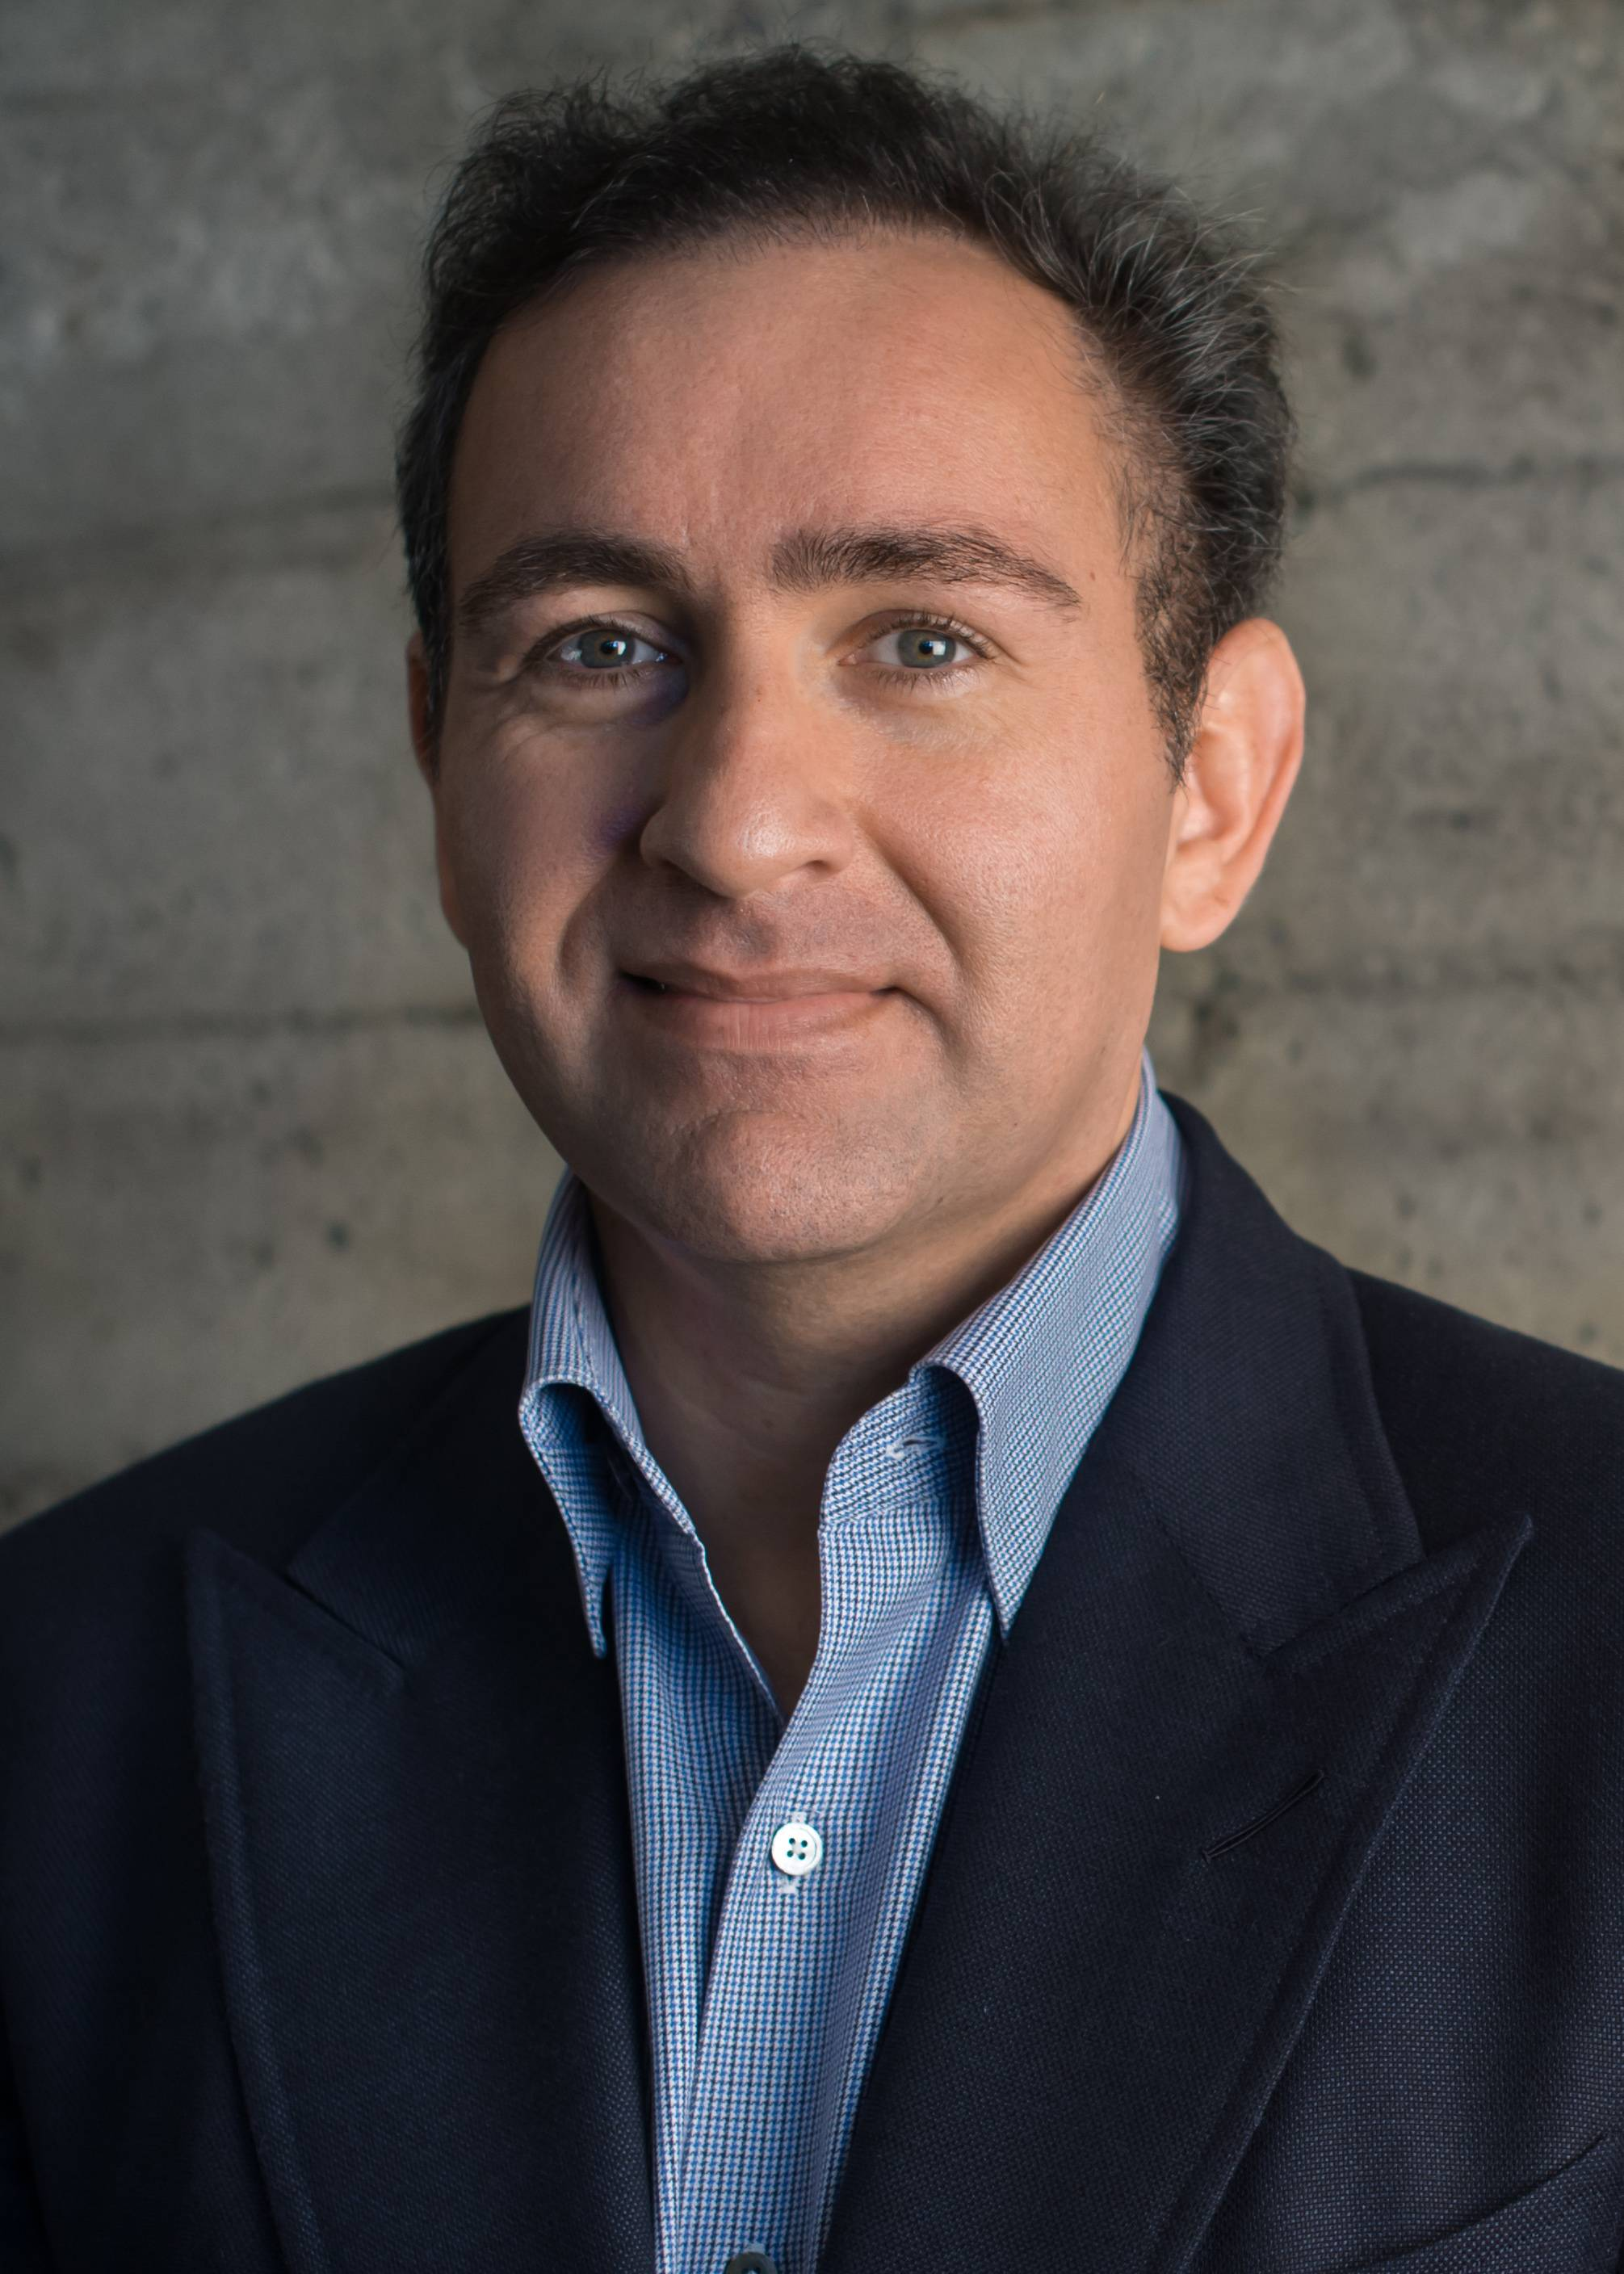 This undated photo provided by Twitter shows Chief Operating Officer Ali Rowghani. Twitter on Tuesday, June 12, 2014 announced that Rowghani has resigned from his post and won't be replaced as CEO Dick Costolo seeks more direct involvement with the company's engineering and product teams. (AP Photo/Twitter)